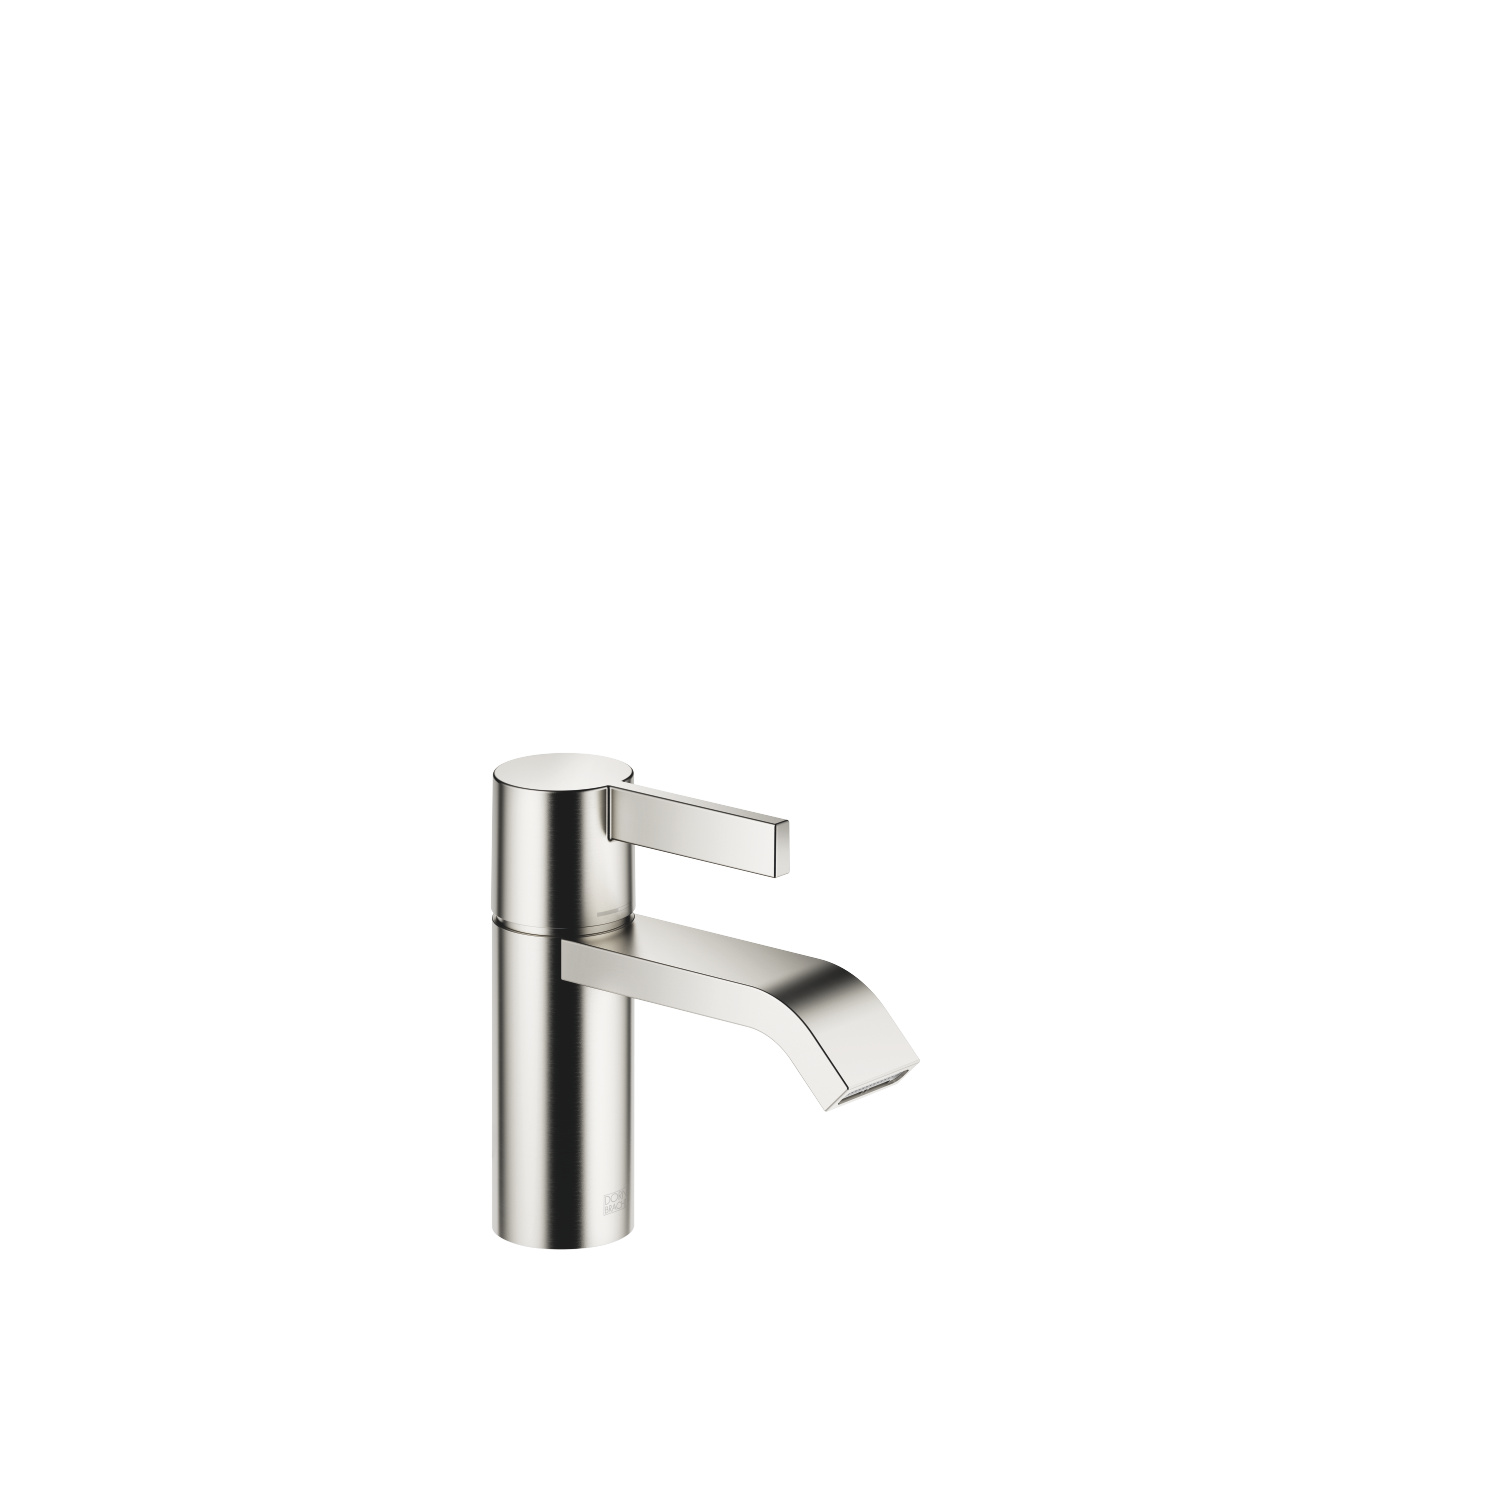 Single-lever basin mixer without pop-up waste - platinum matt - 33 521 670-06